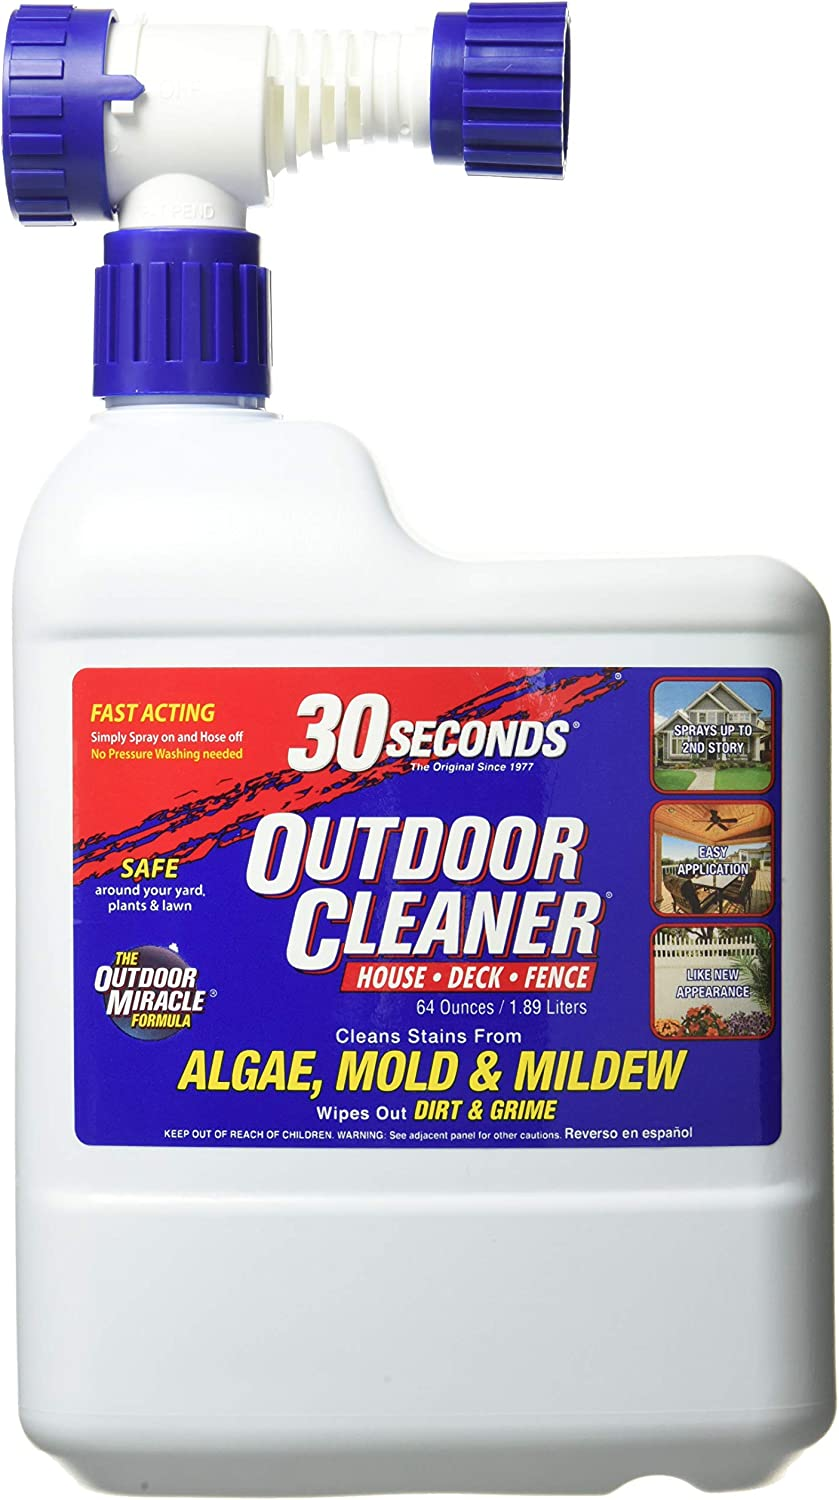 Best cleaner with a hose: 30 SECONDS Outdoor Deck Cleaner Hose